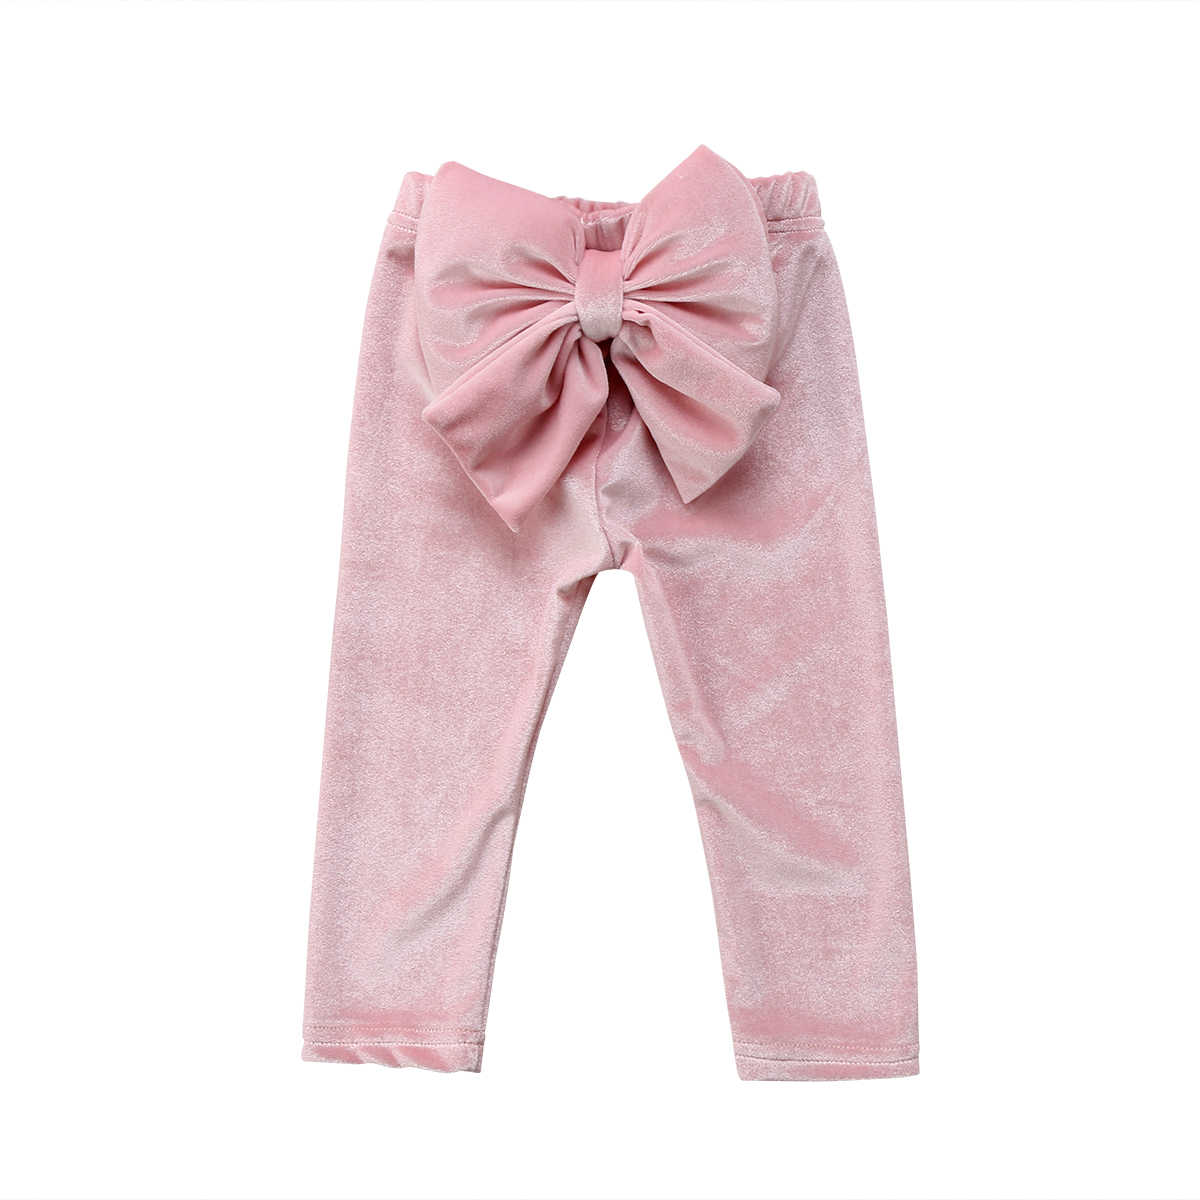 012fd349480e Detail Feedback Questions about 2018 Toddler Kids Baby Girls Big ...